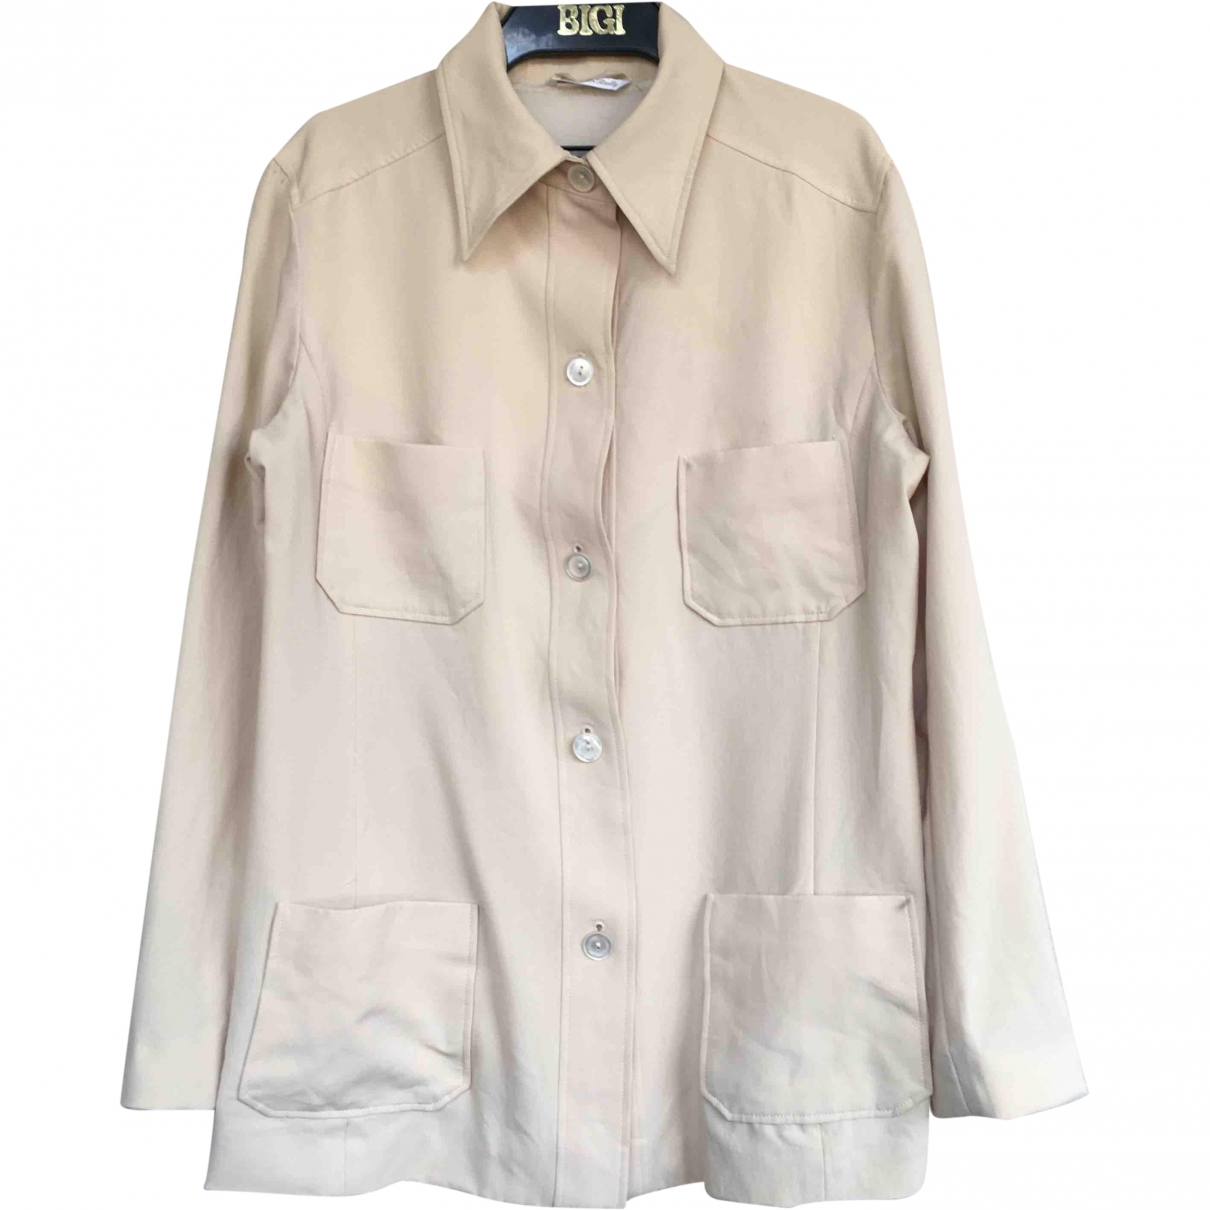 Max Mara \N Beige  top for Women M